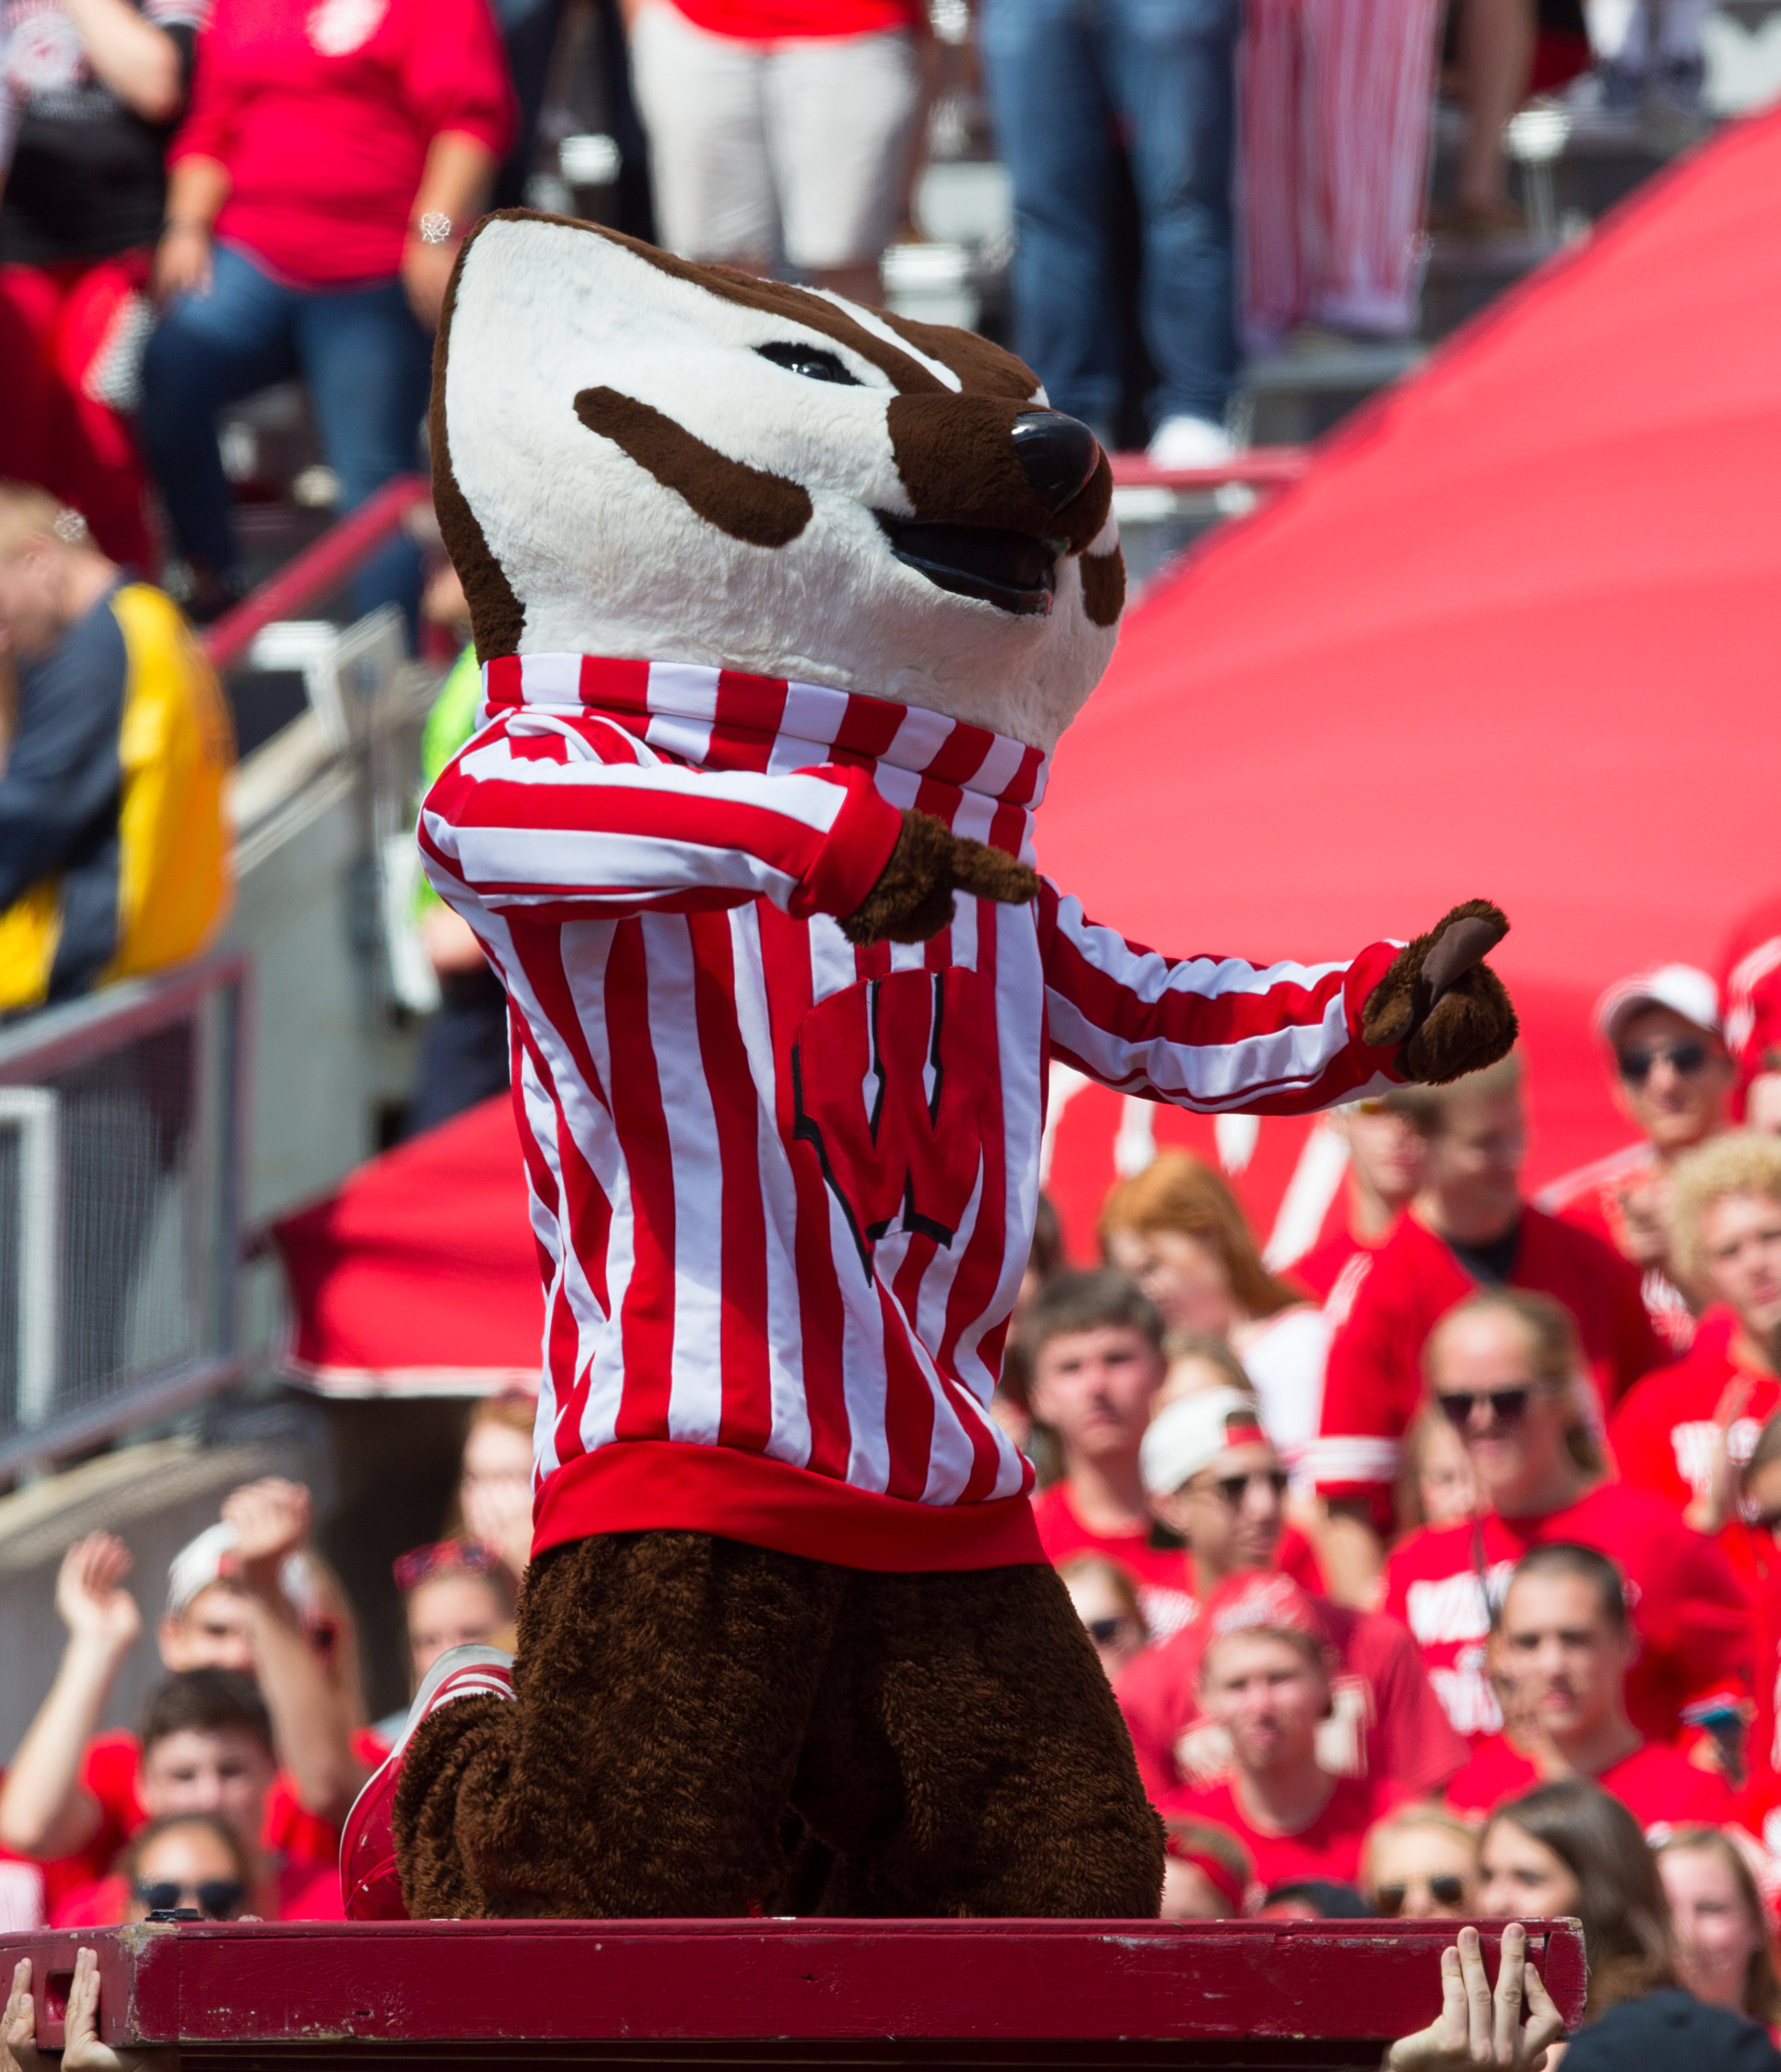 Mother 39 S Day Gift Ideas With A Wisconsin Badger Flavor Page 3